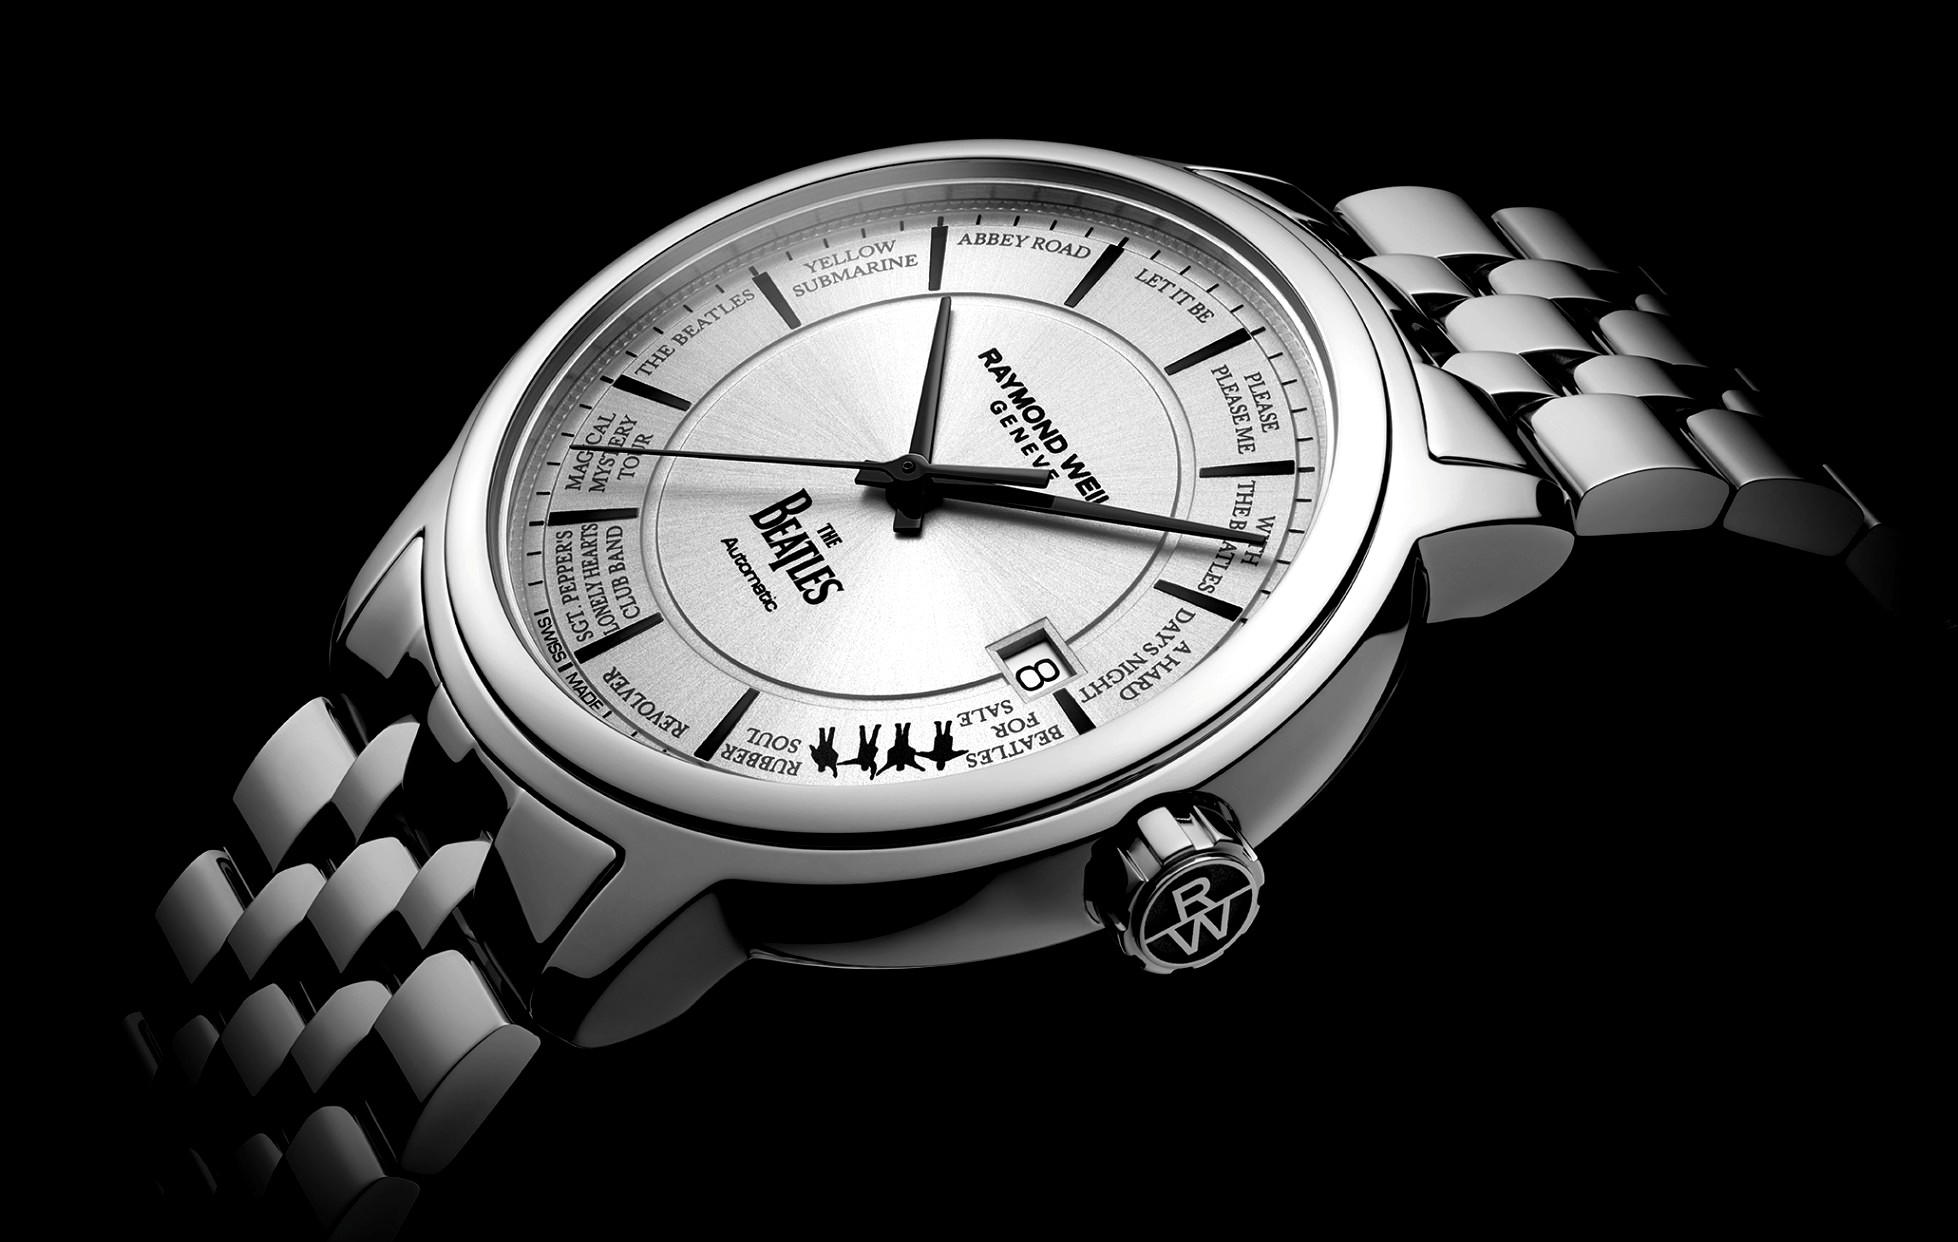 Raymond Weil in harmony with The Beatles